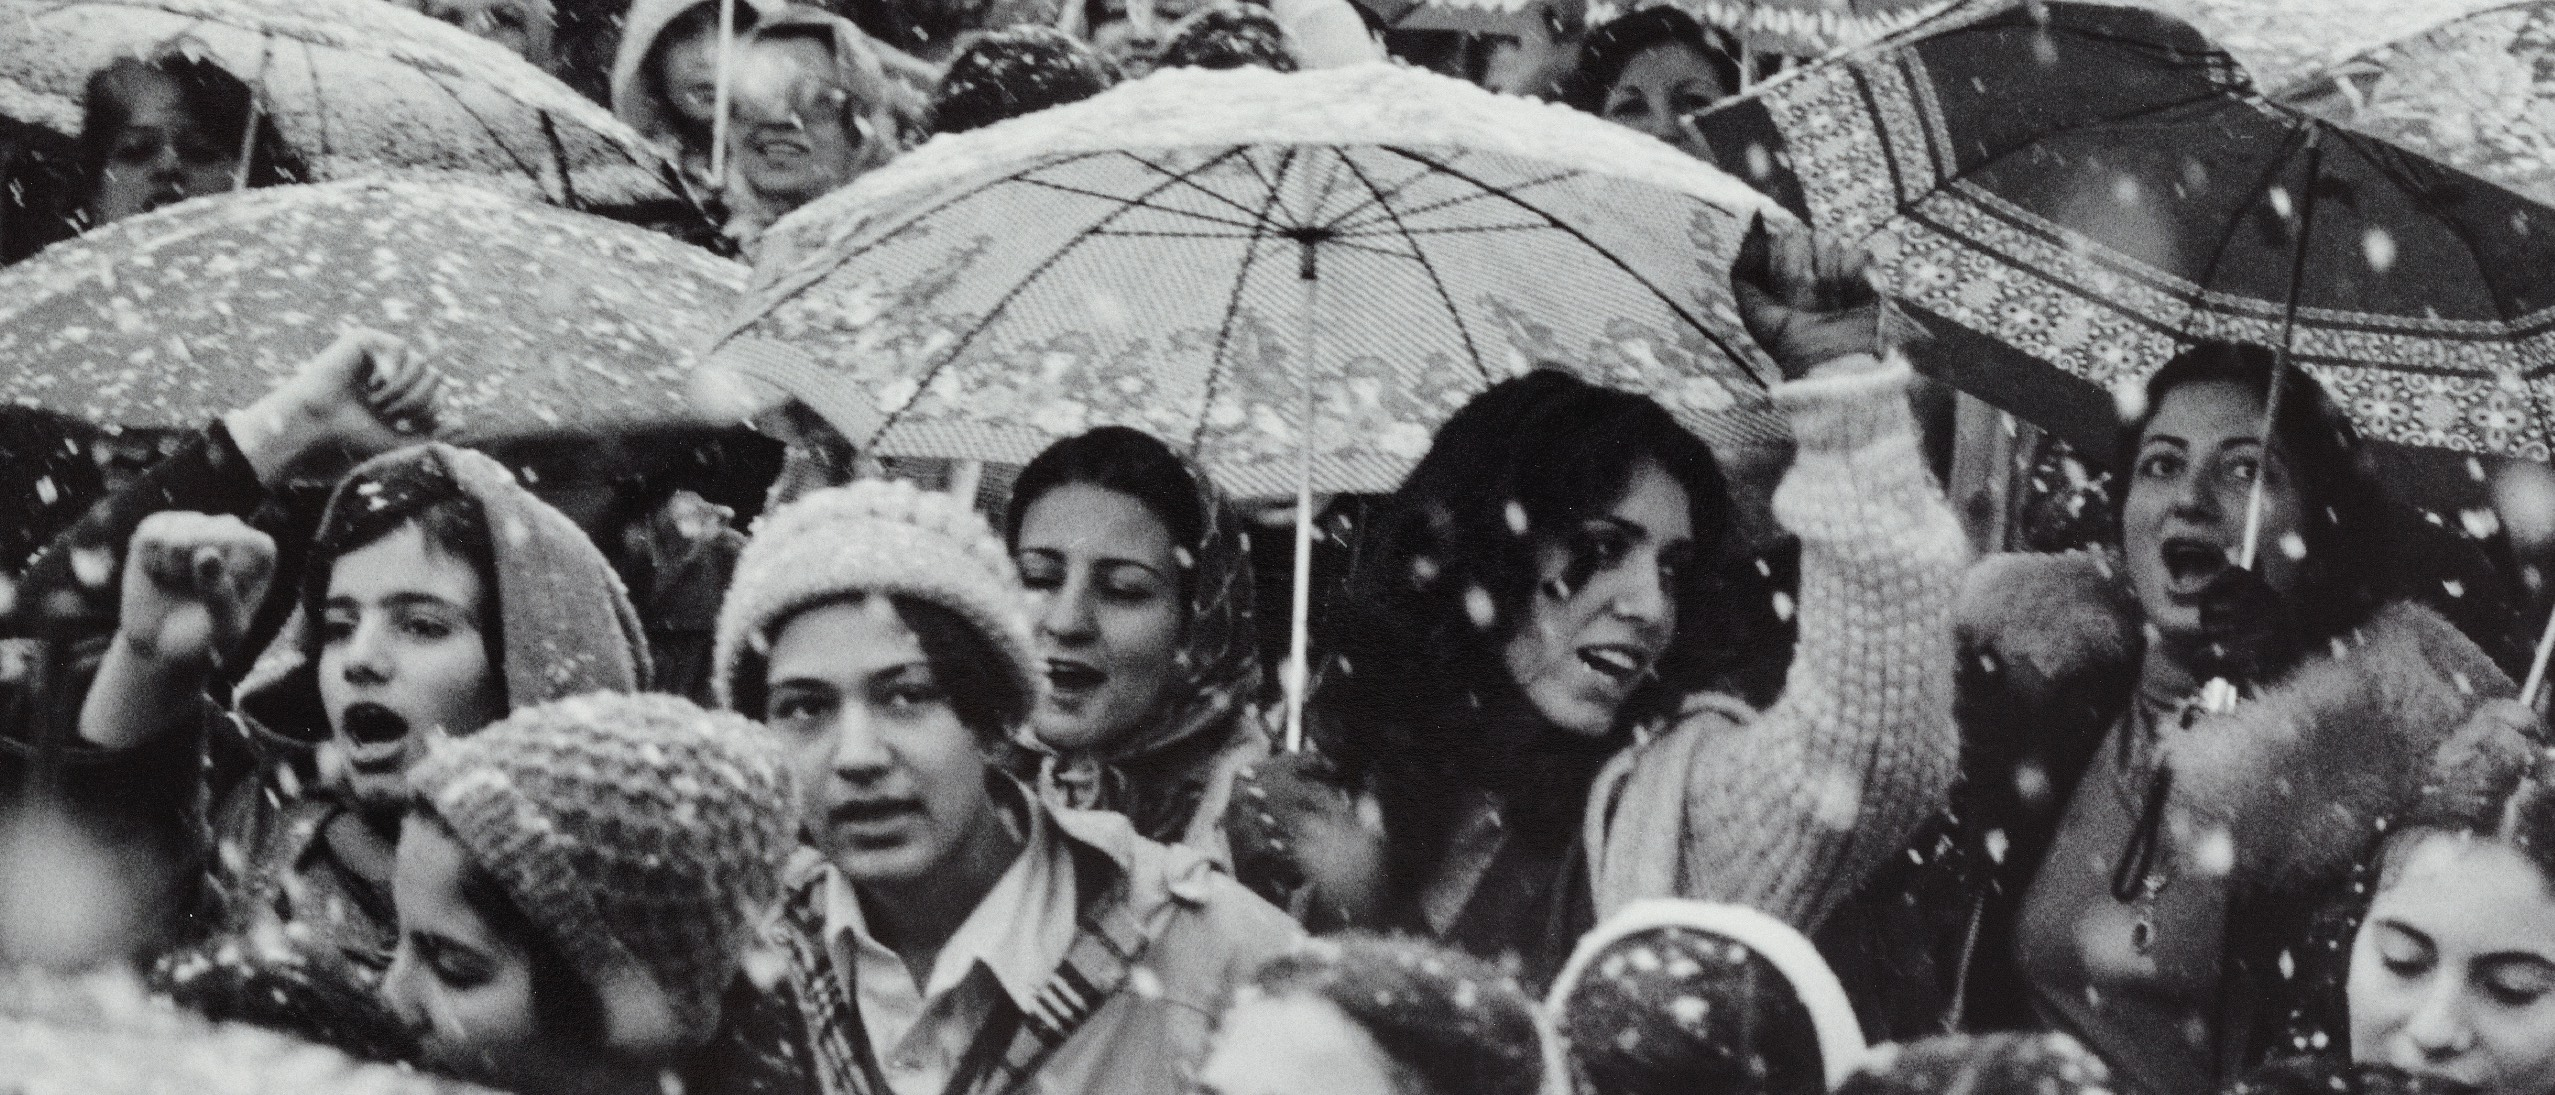 Black and white photo of a crowd with umbrellas and snow